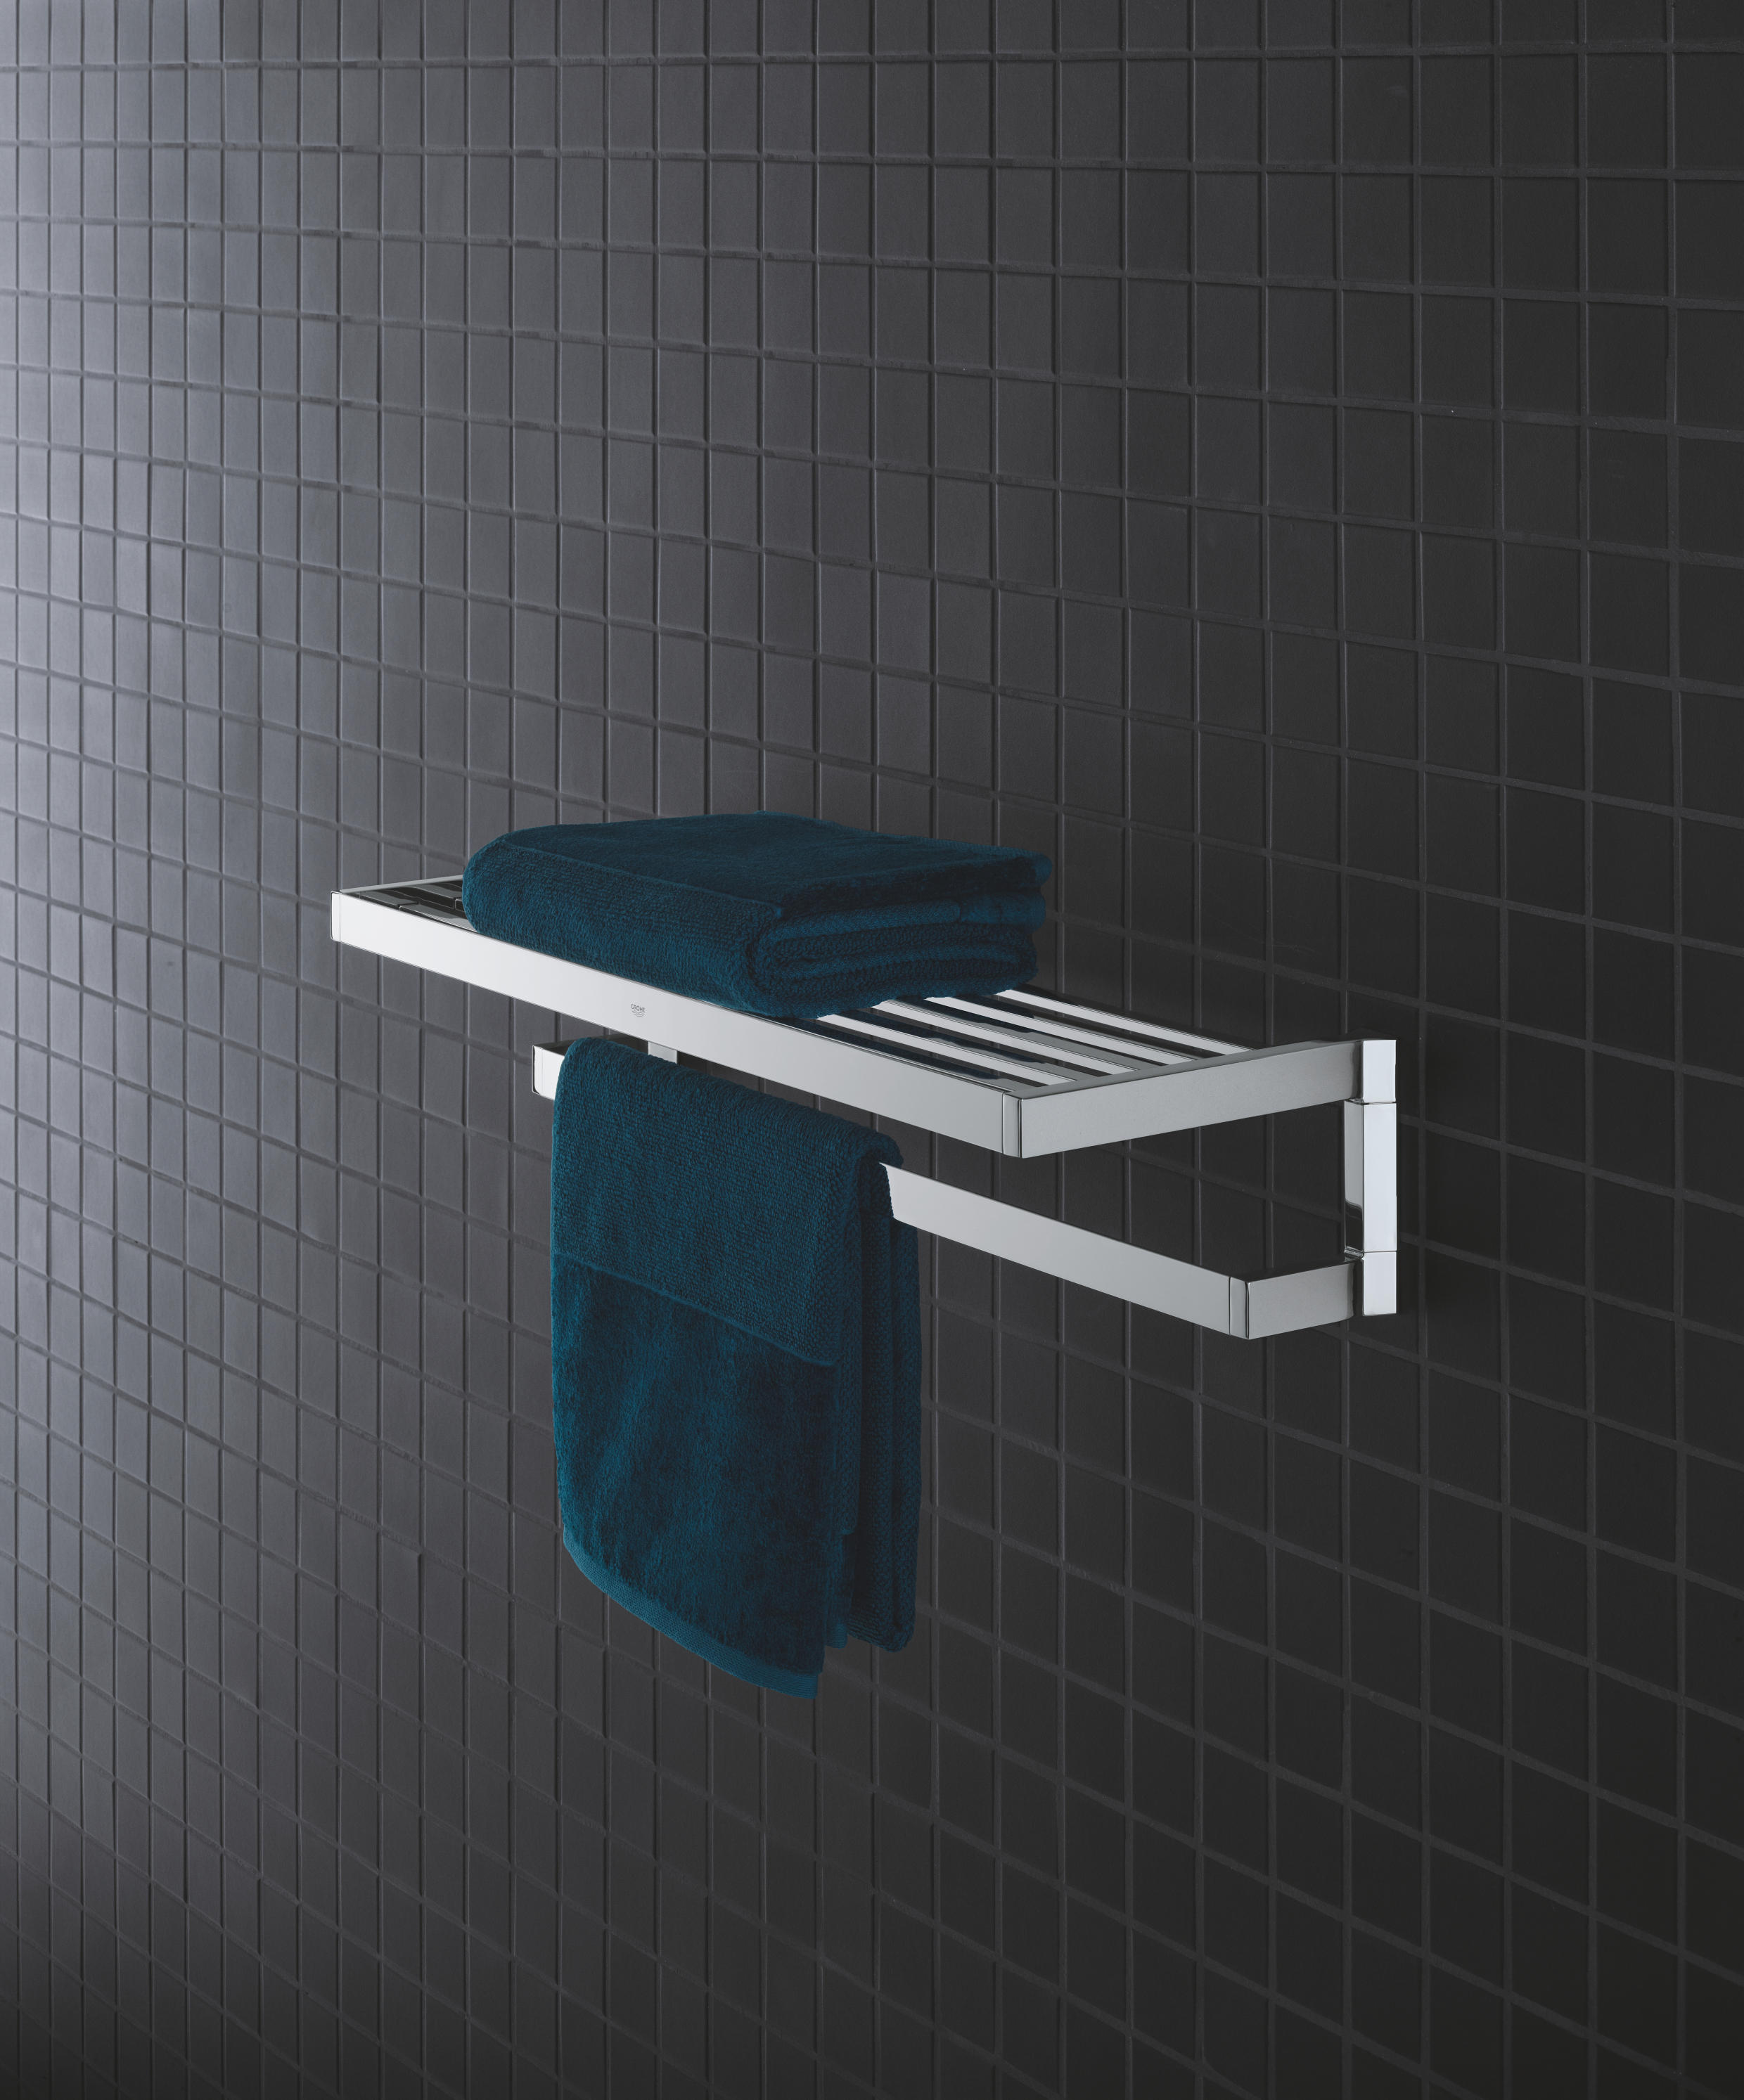 dish from soap en dishes lira bathroom holders pomdor b pomd corner by or rack product accessories